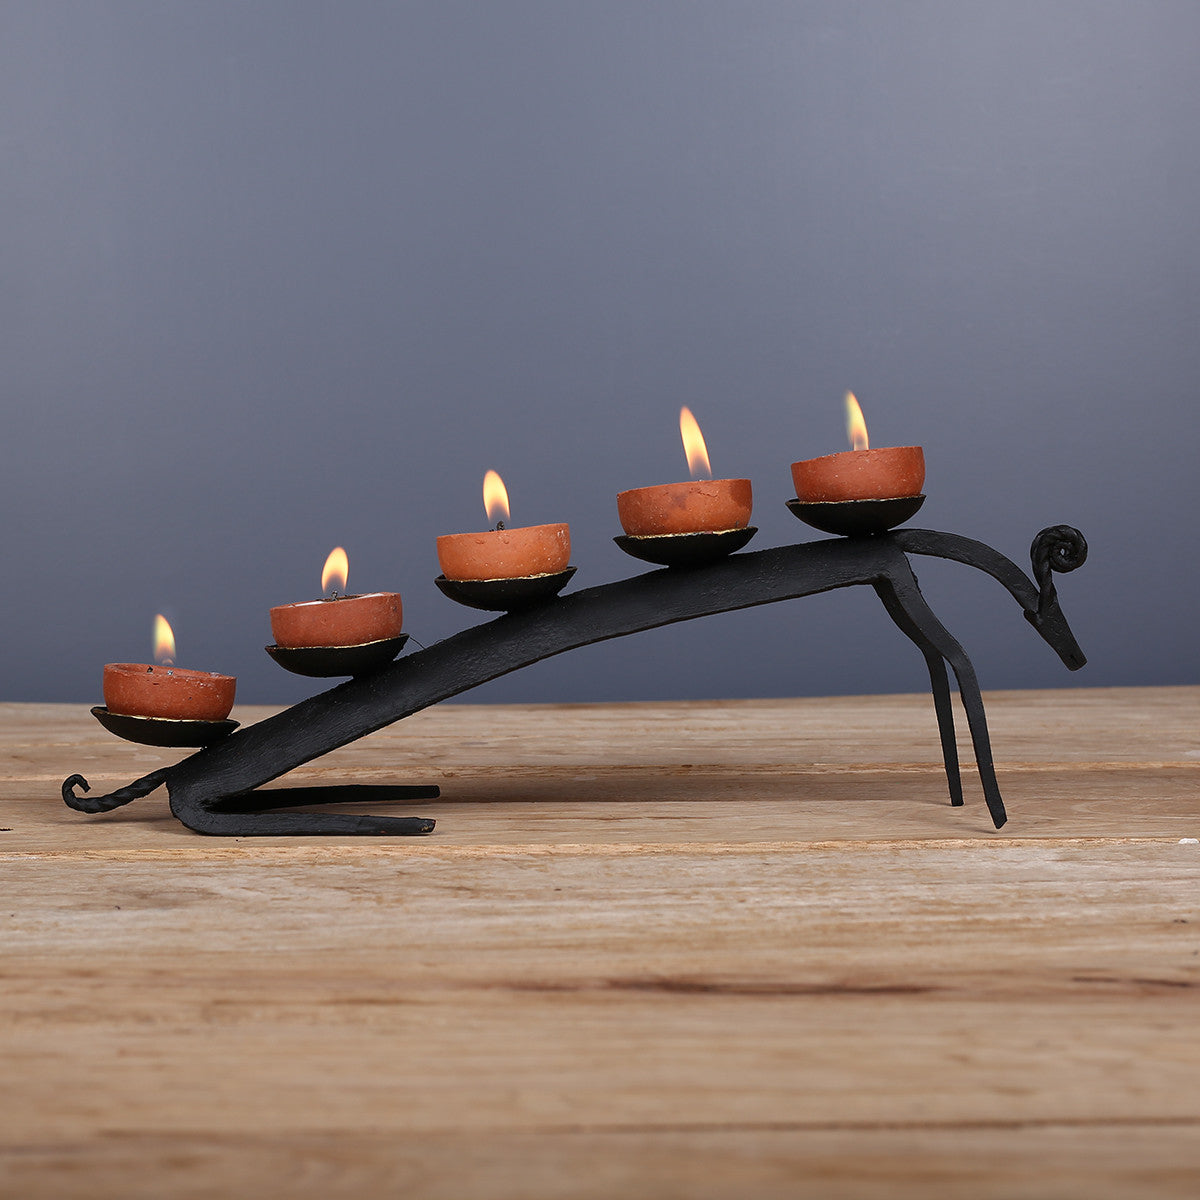 Wrought Iron Candle Stand in Dokra Art from Bastar